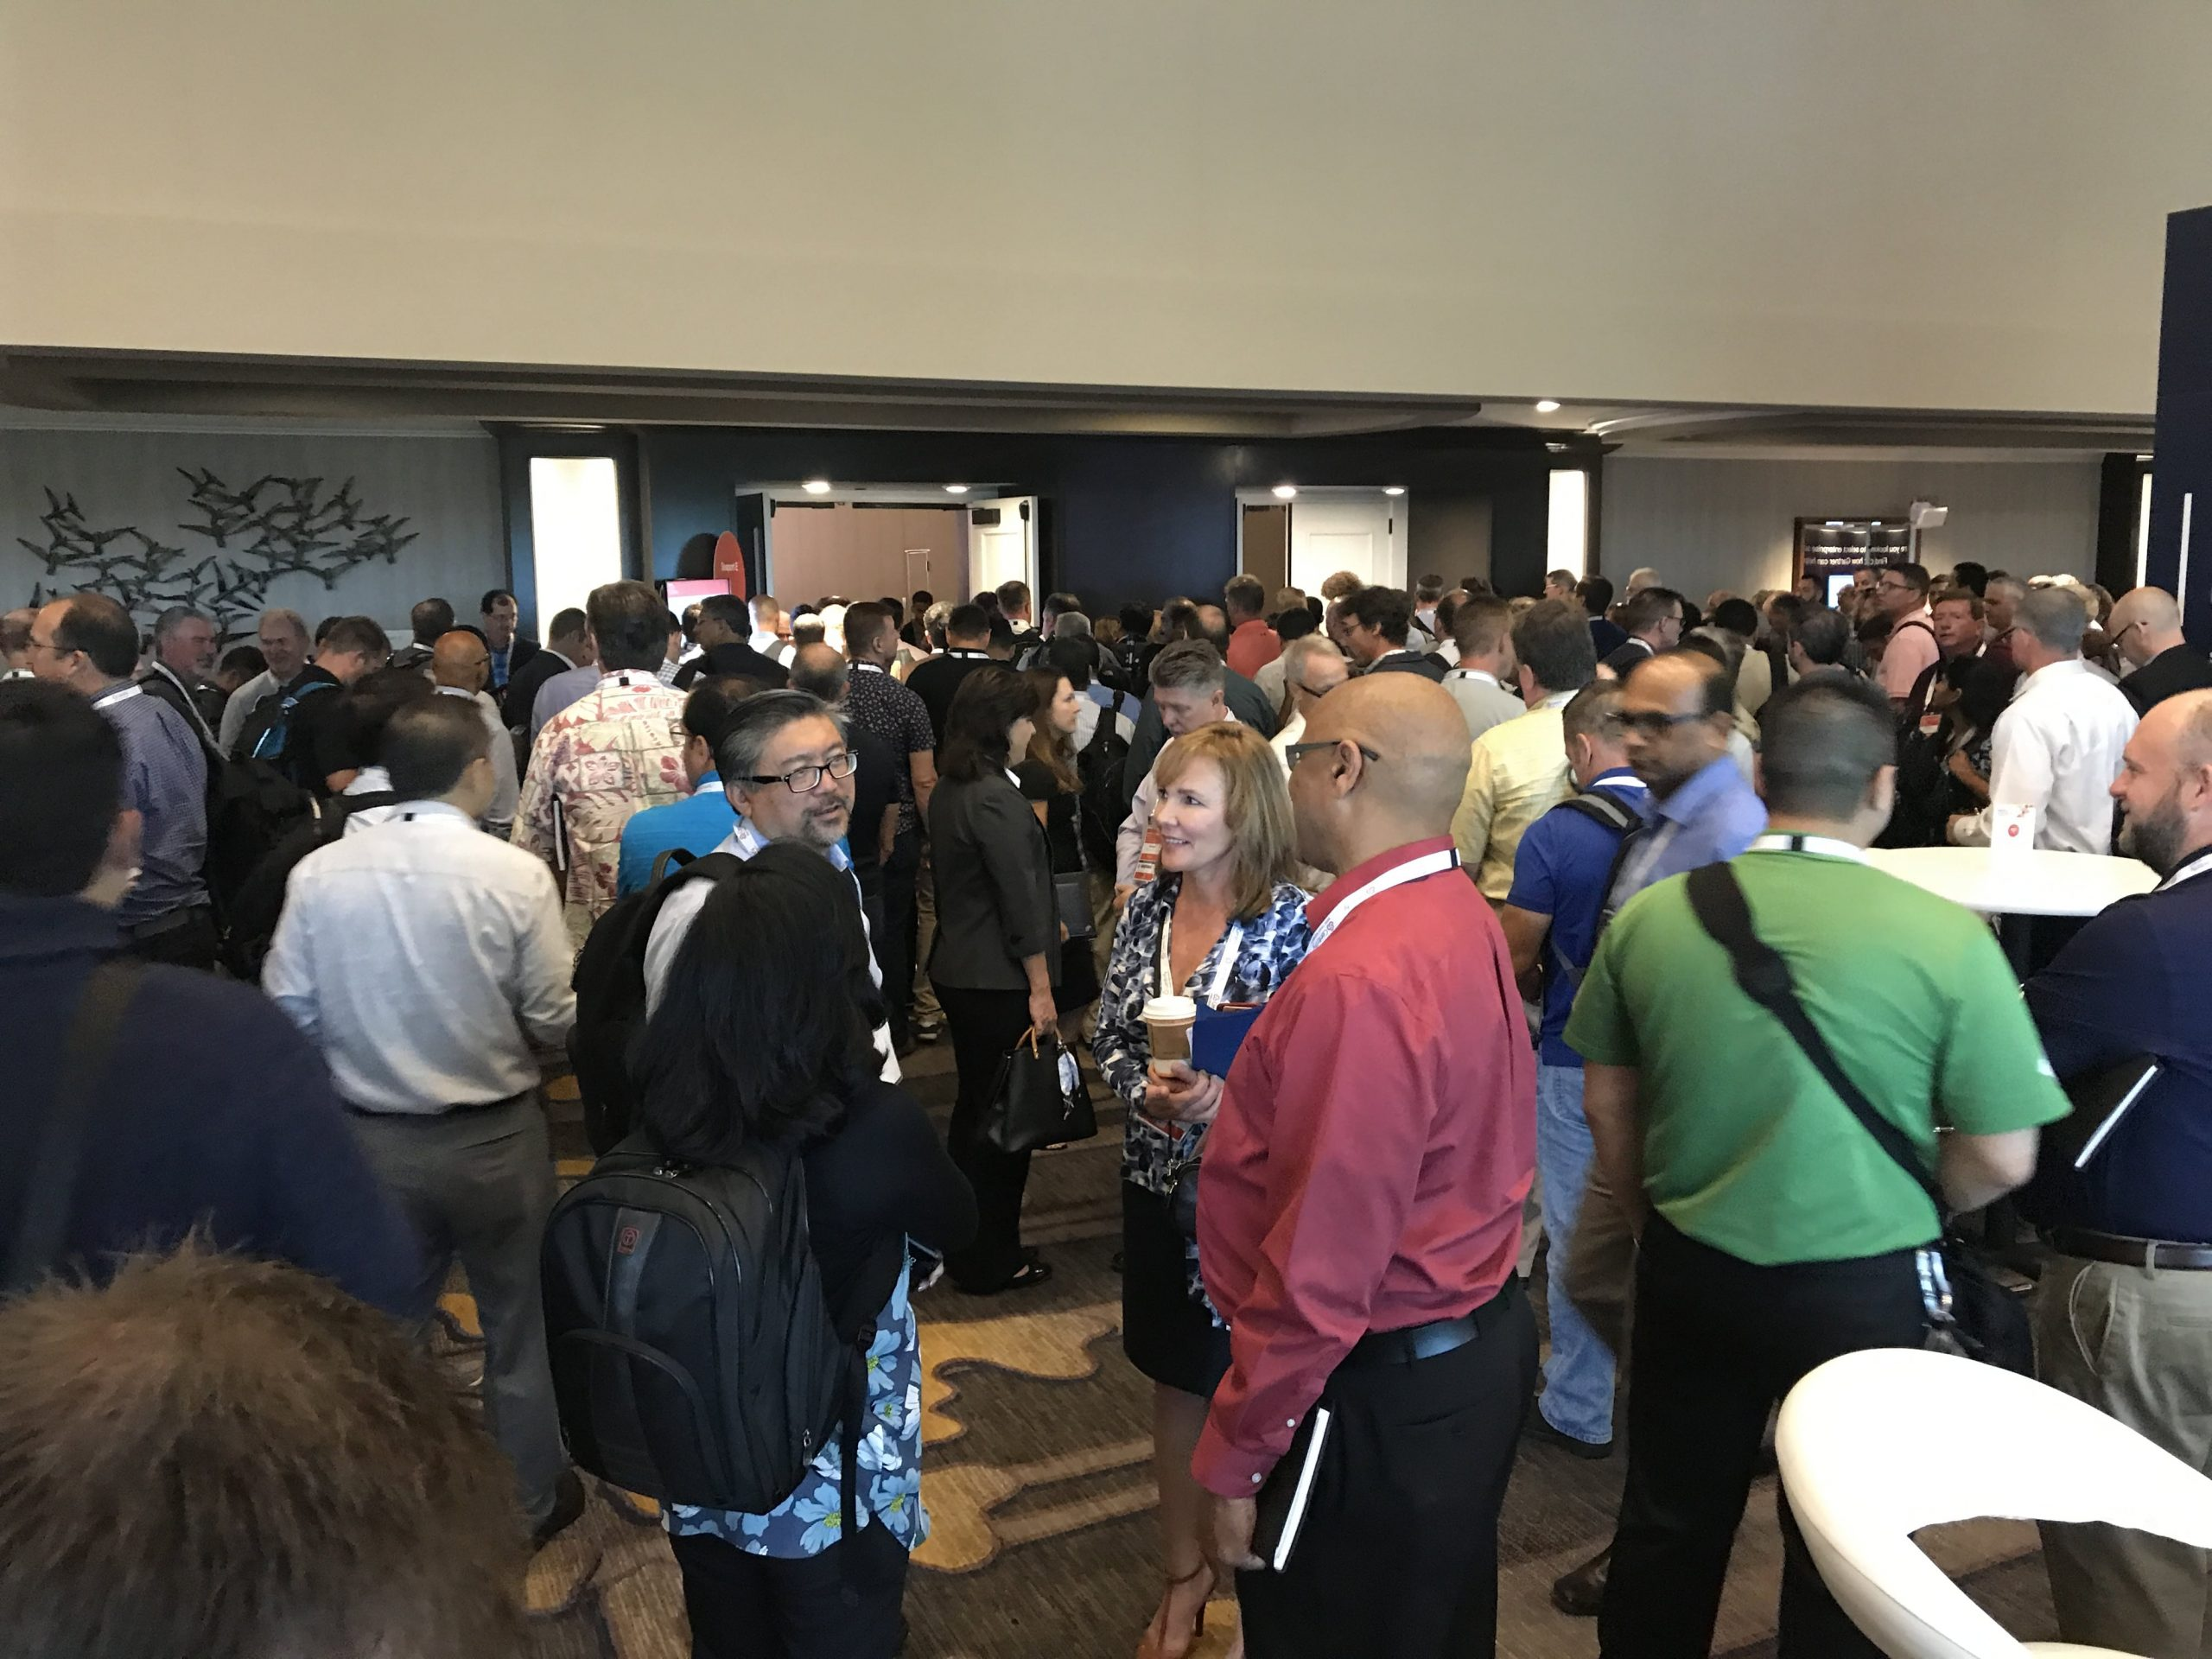 People lining up to get in to Gartner analyst Kyle Davis' keynote speech